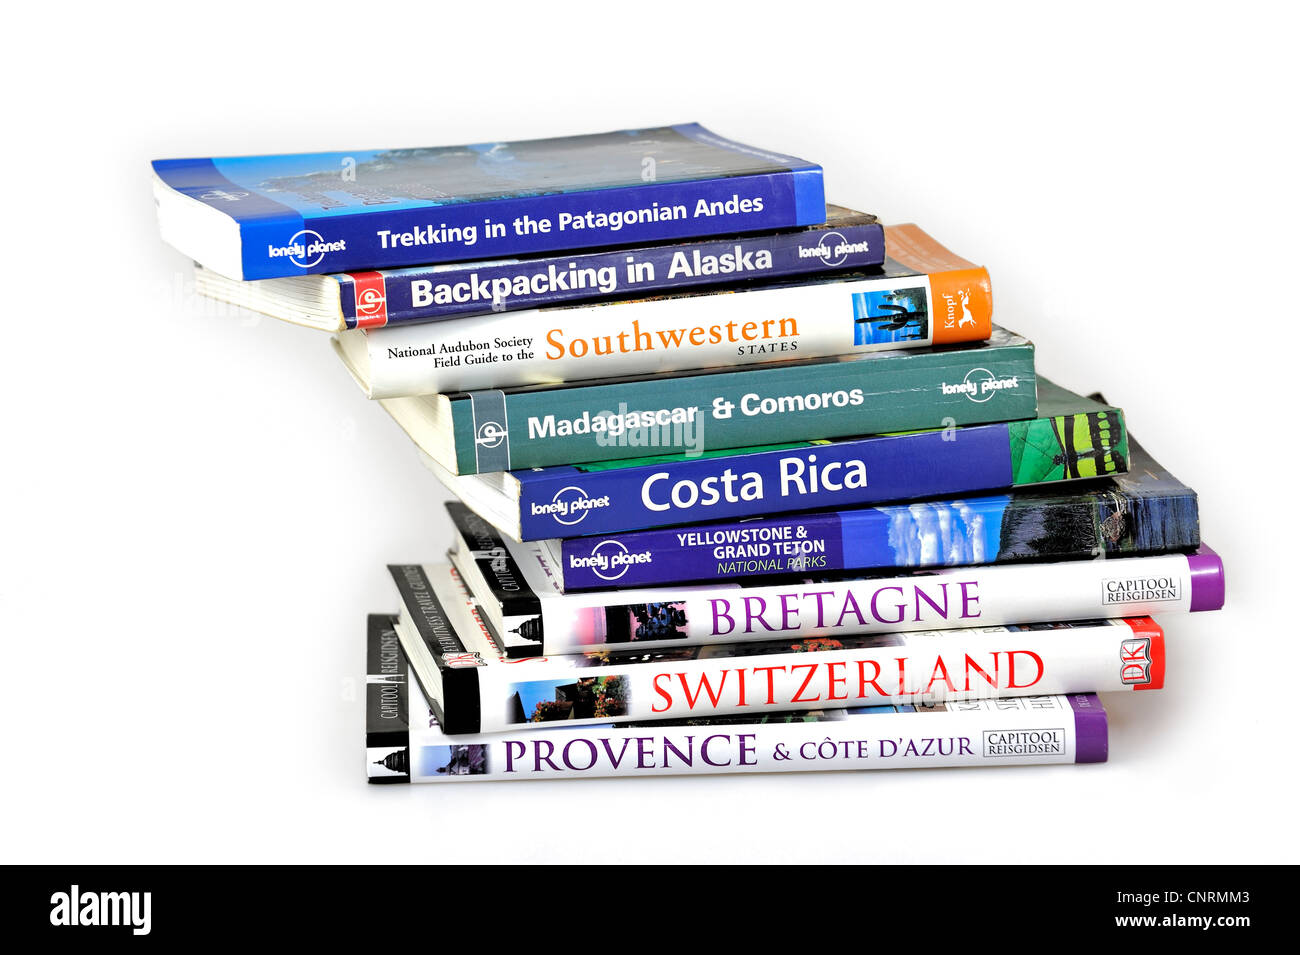 Collection showing assortment of travel guides and guidebooks about worldwide holiday destinations - Stock Image